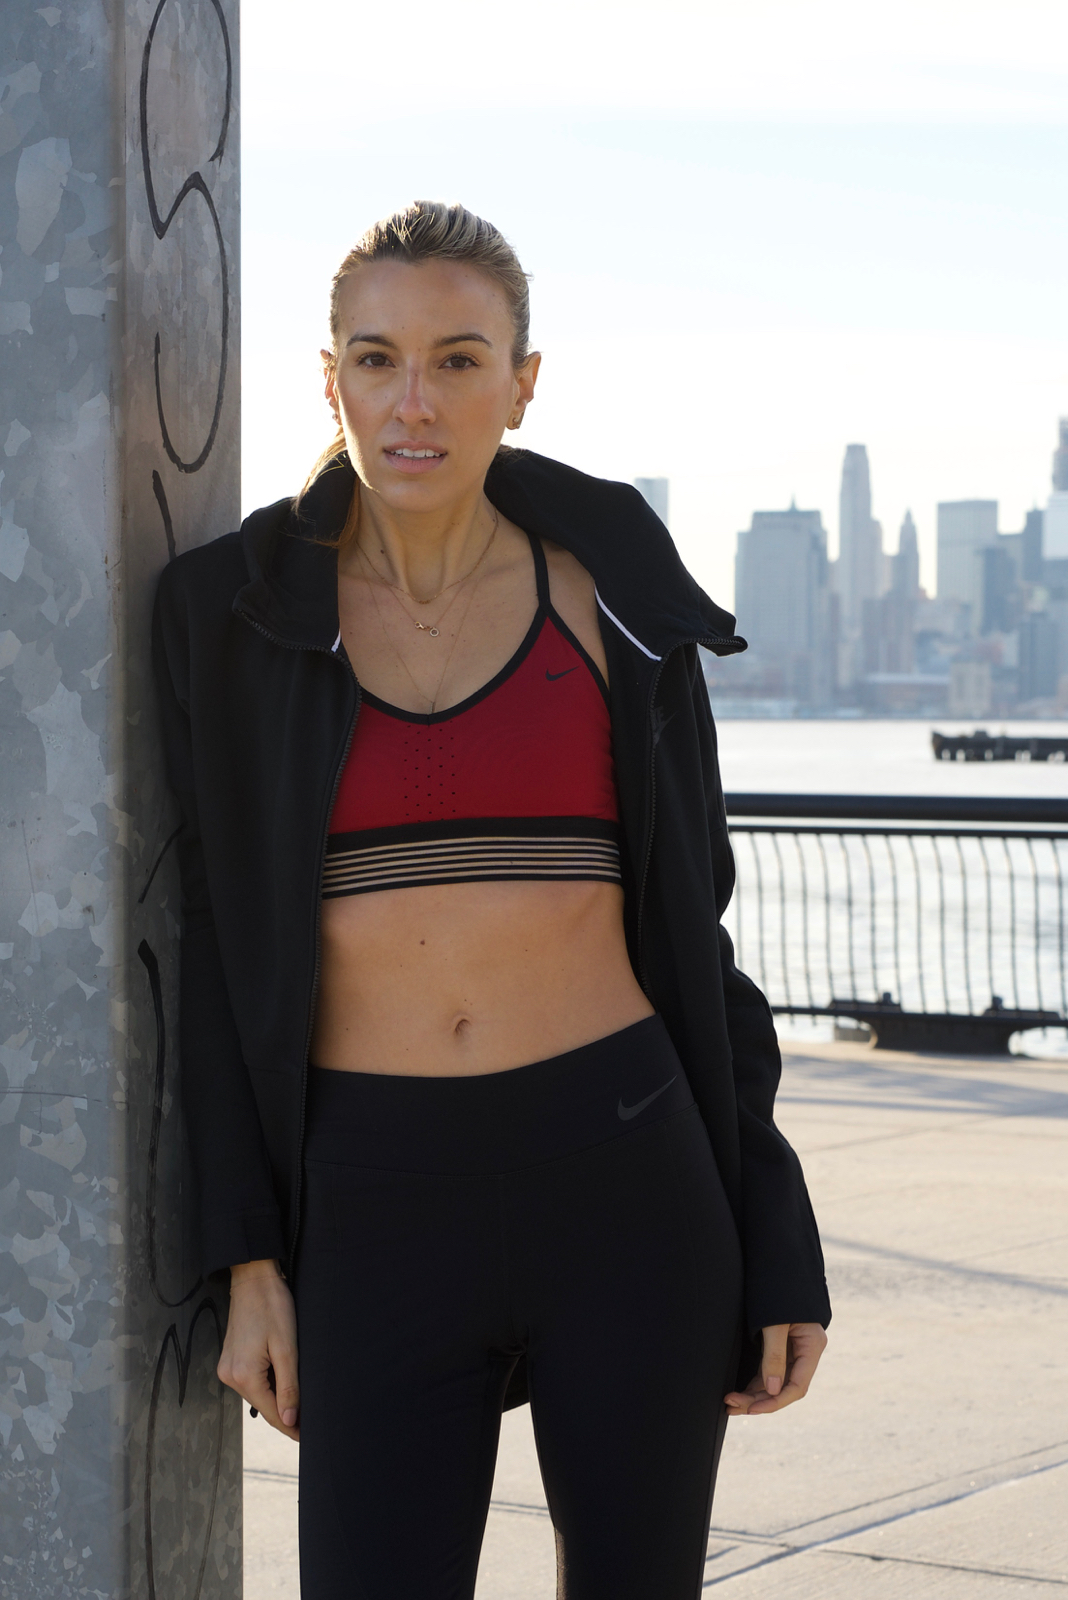 Jack Rabbit NYC, Nike, Workout, Health, Fitness, Fit model, New York